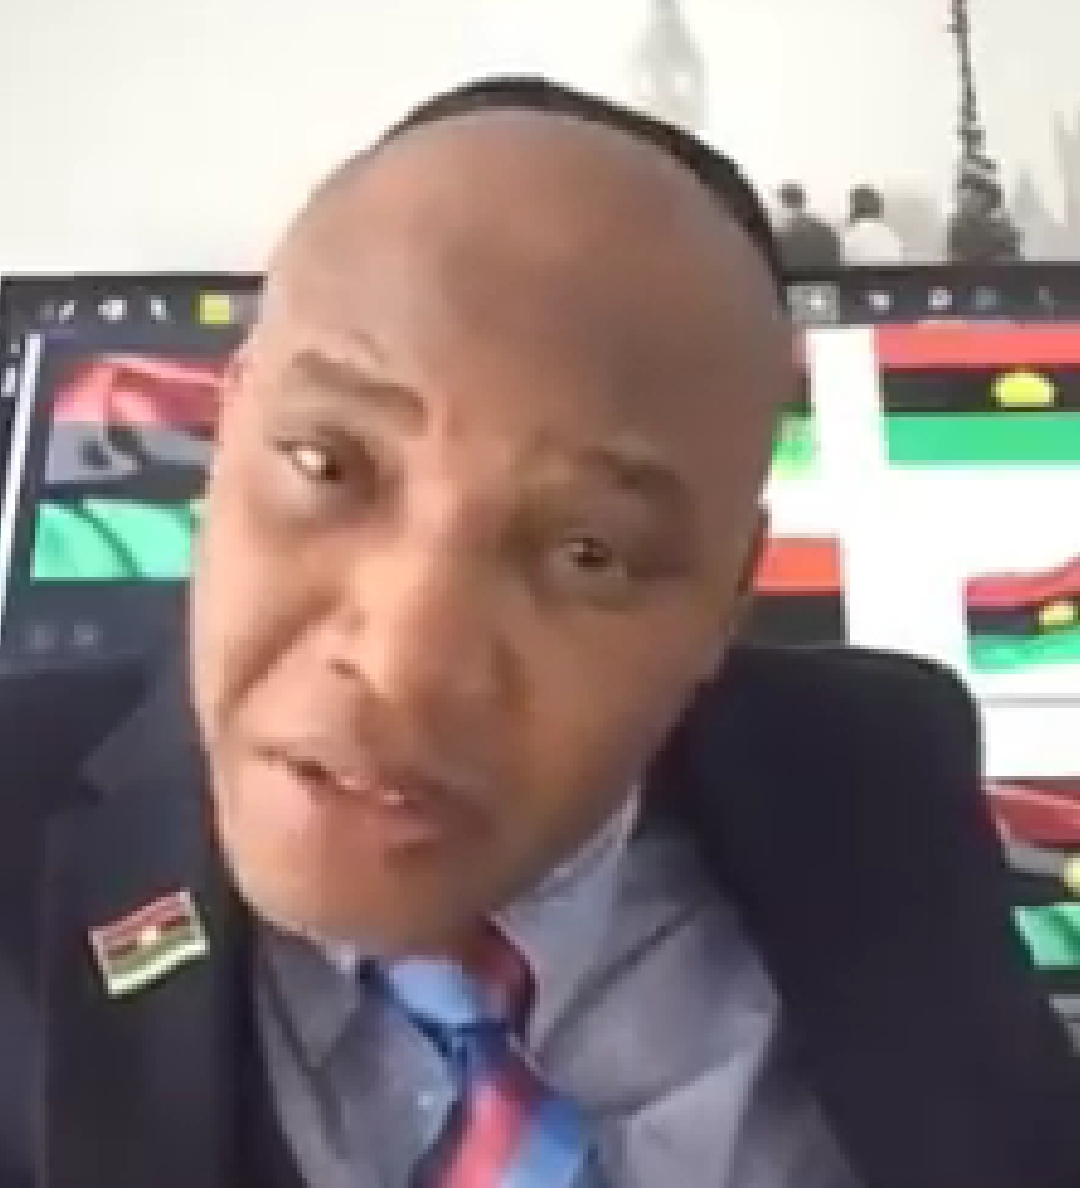 Nnamdi Kanu On The History Of Igbos, Biafra And Nigeria